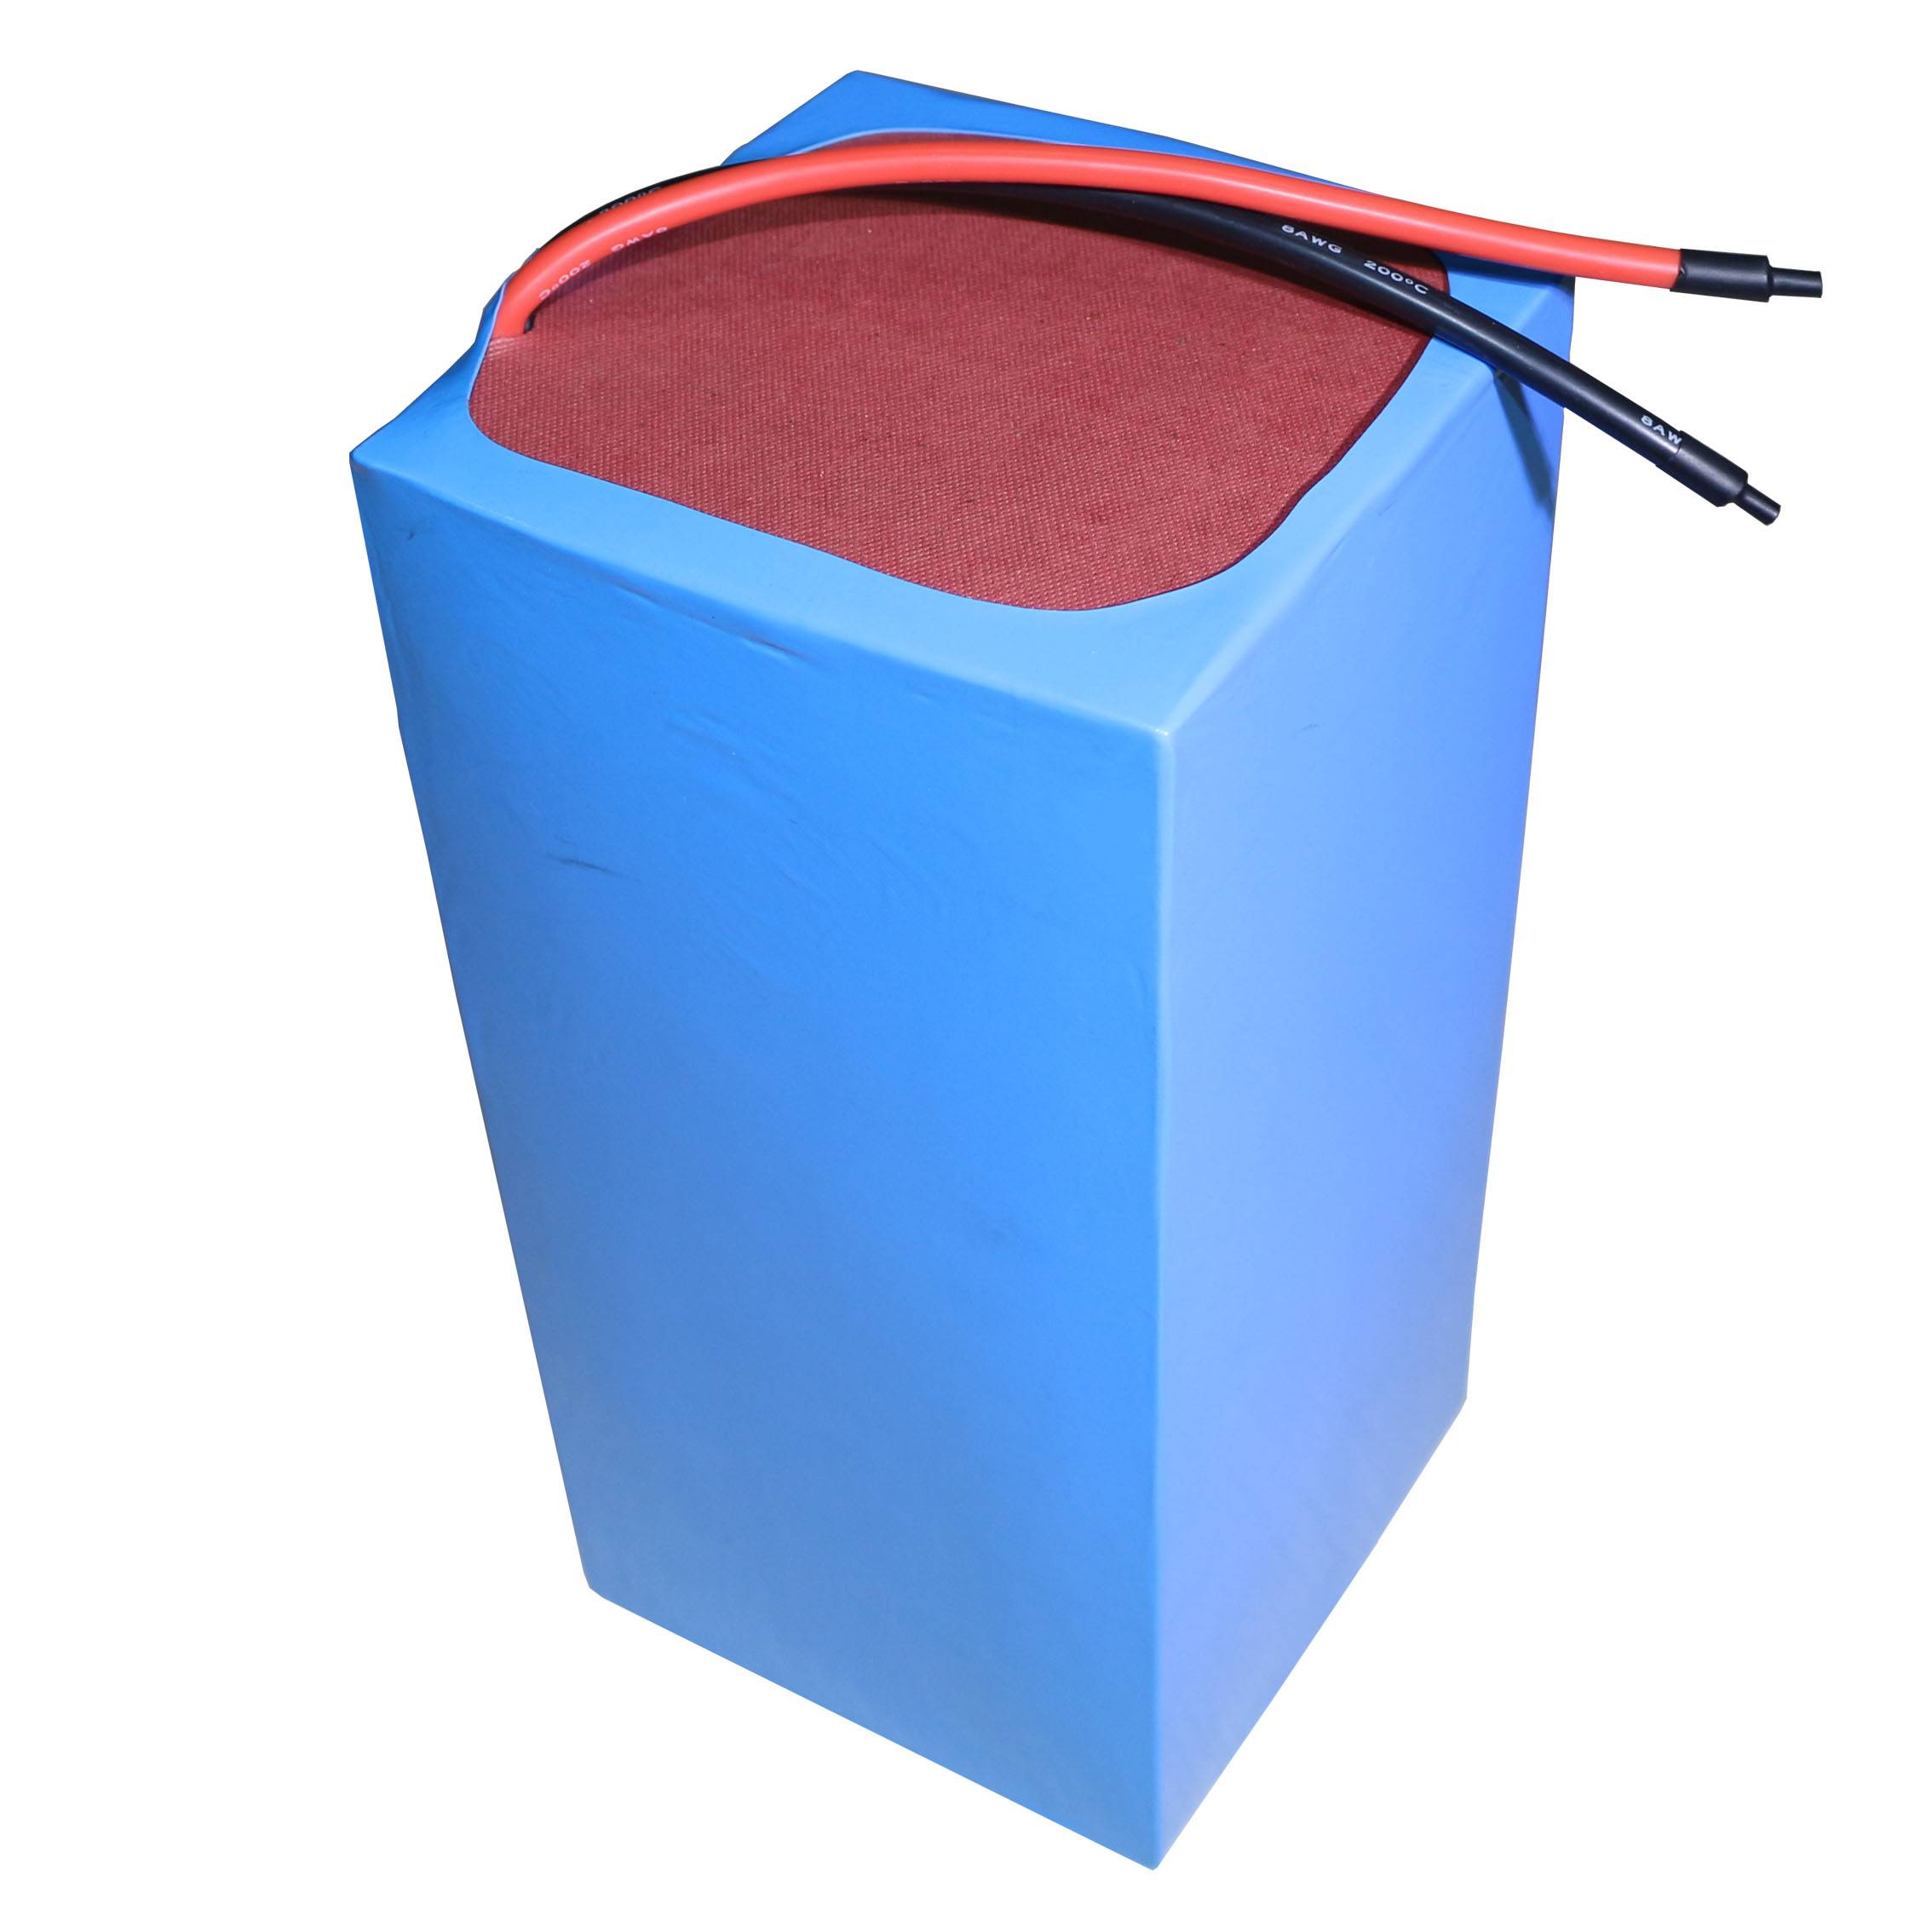 12V80Ah energy storage Li-ion battery pack